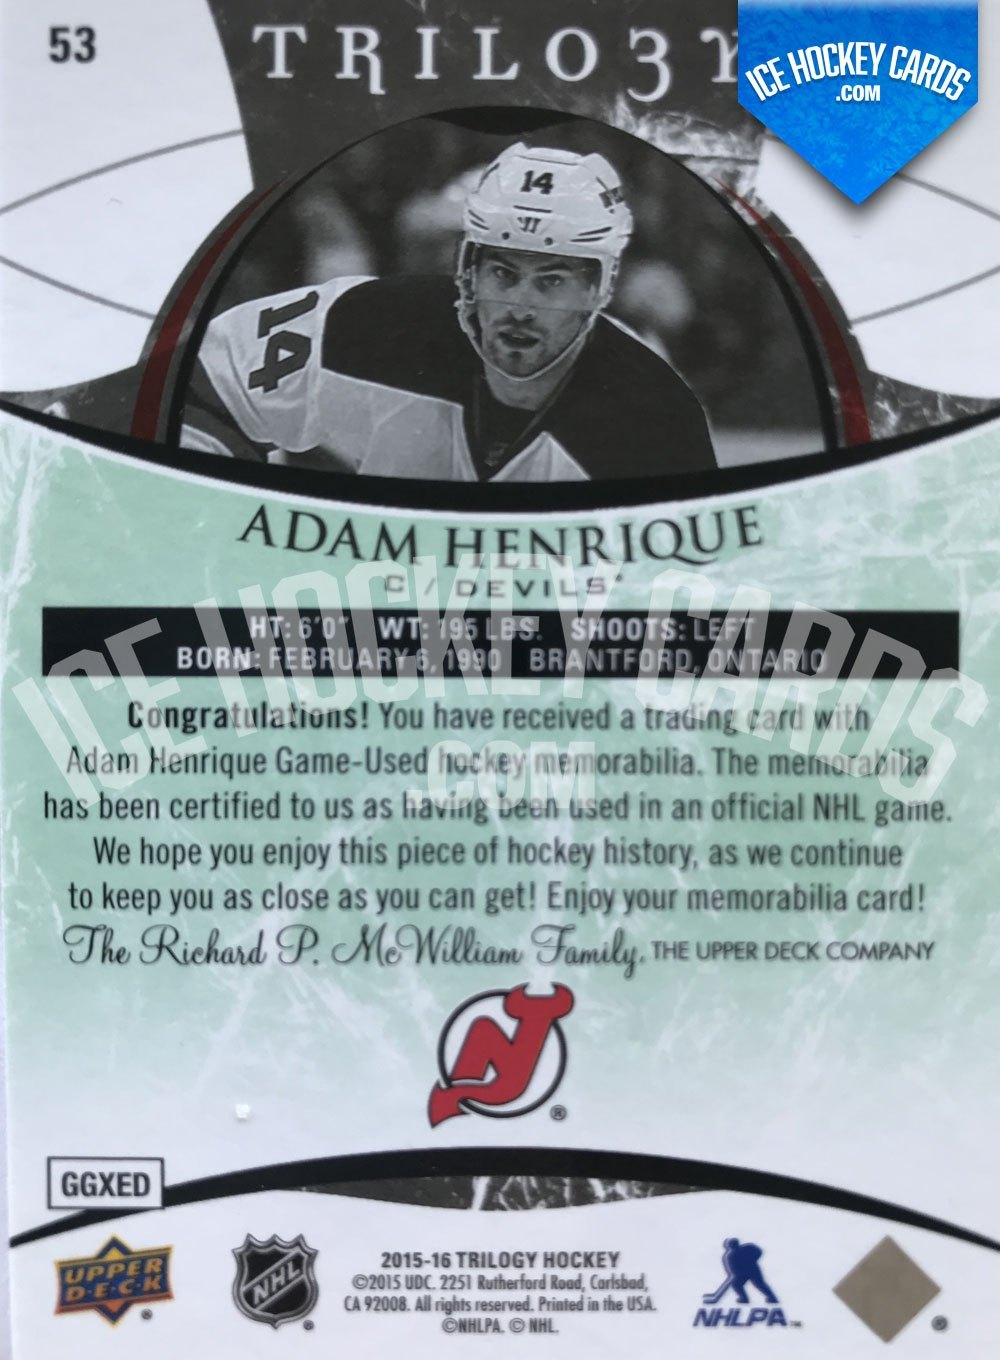 Upper Deck - Trilogy 15-16 - Adam Henrique Green Jersey Card back